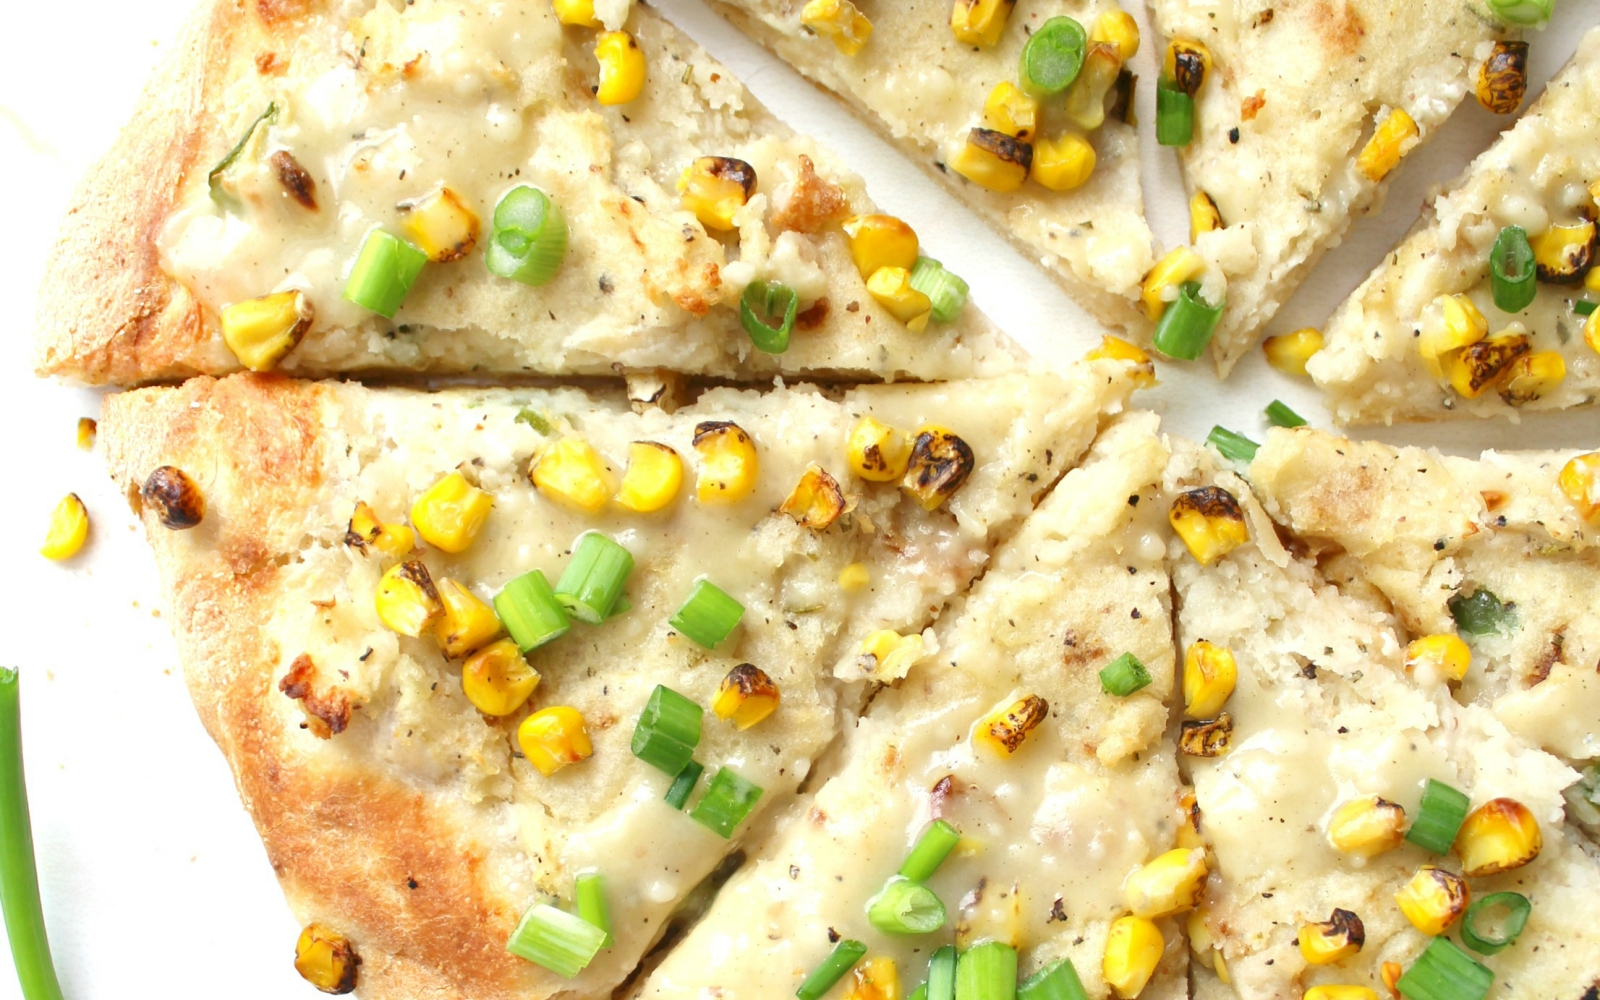 vegan Mashed Potato White Pizza